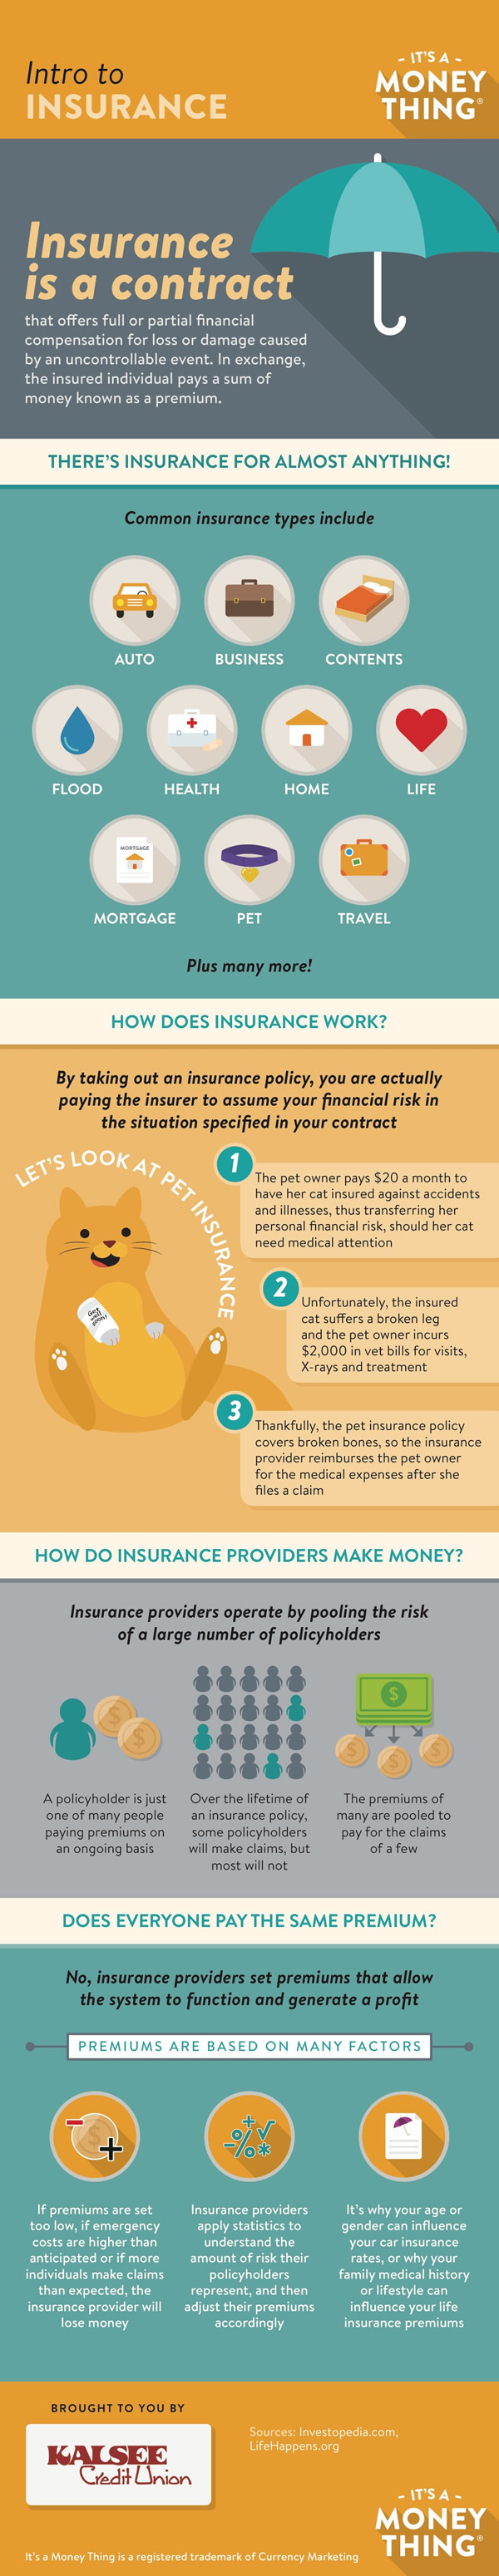 Intro to Insurance infographic, click for transcription